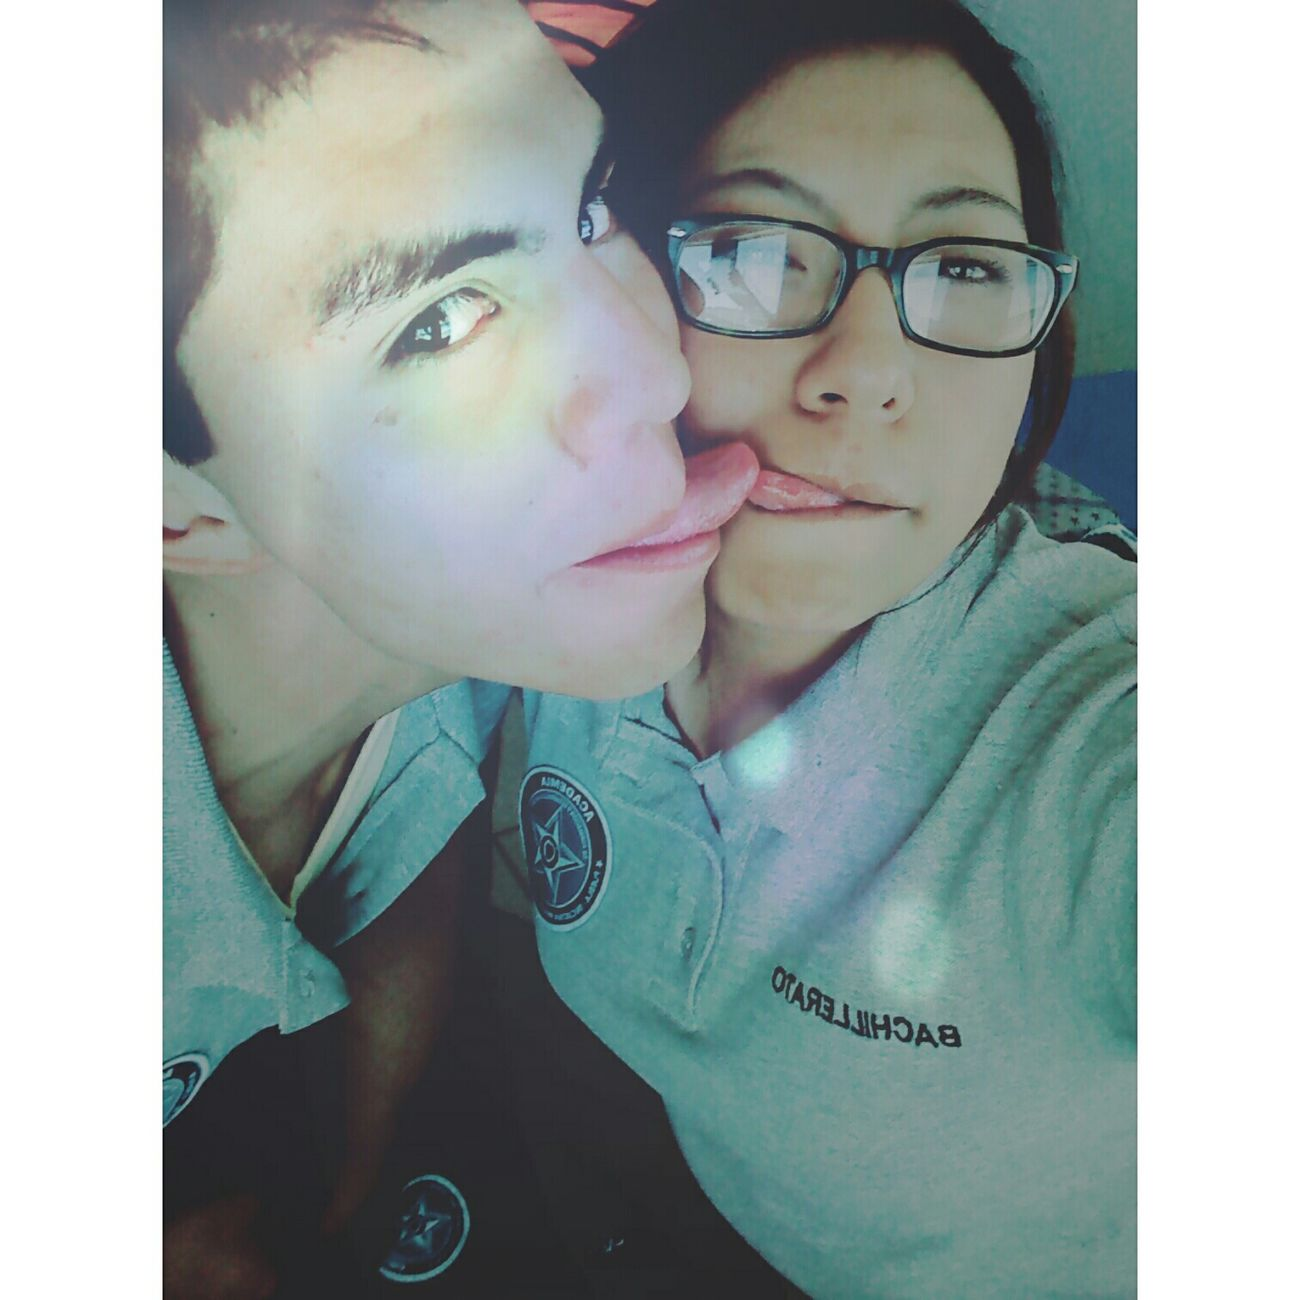 Love ♥ Me&myboy♡ Tongueout Only You My Love❤ Bae❤️